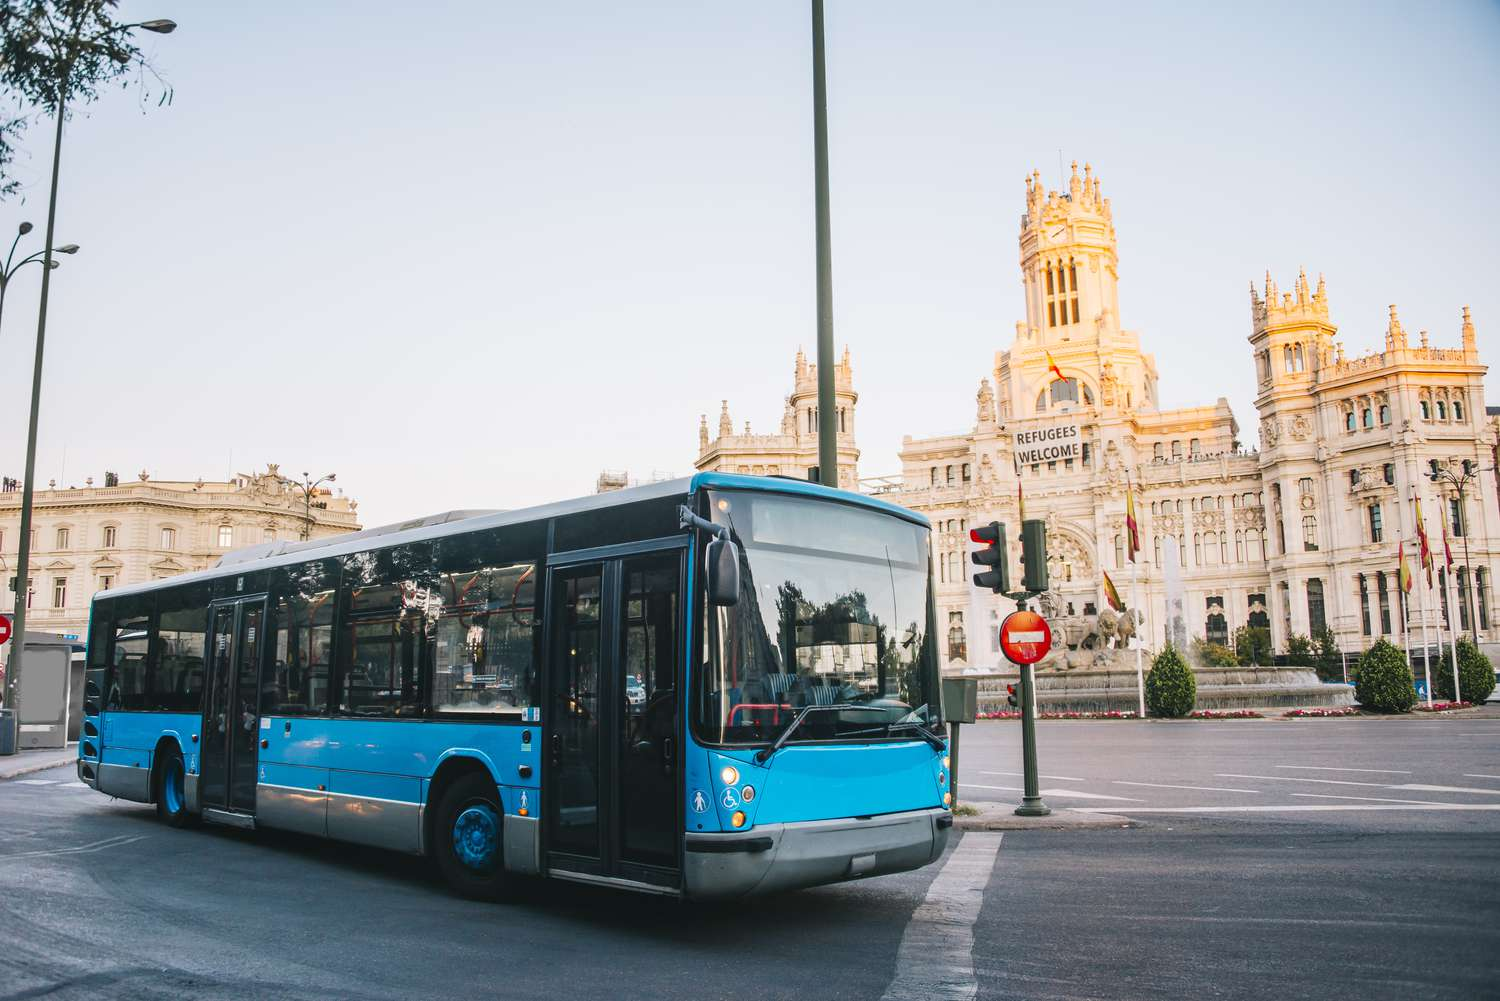 A city bus in Madrid, Spain